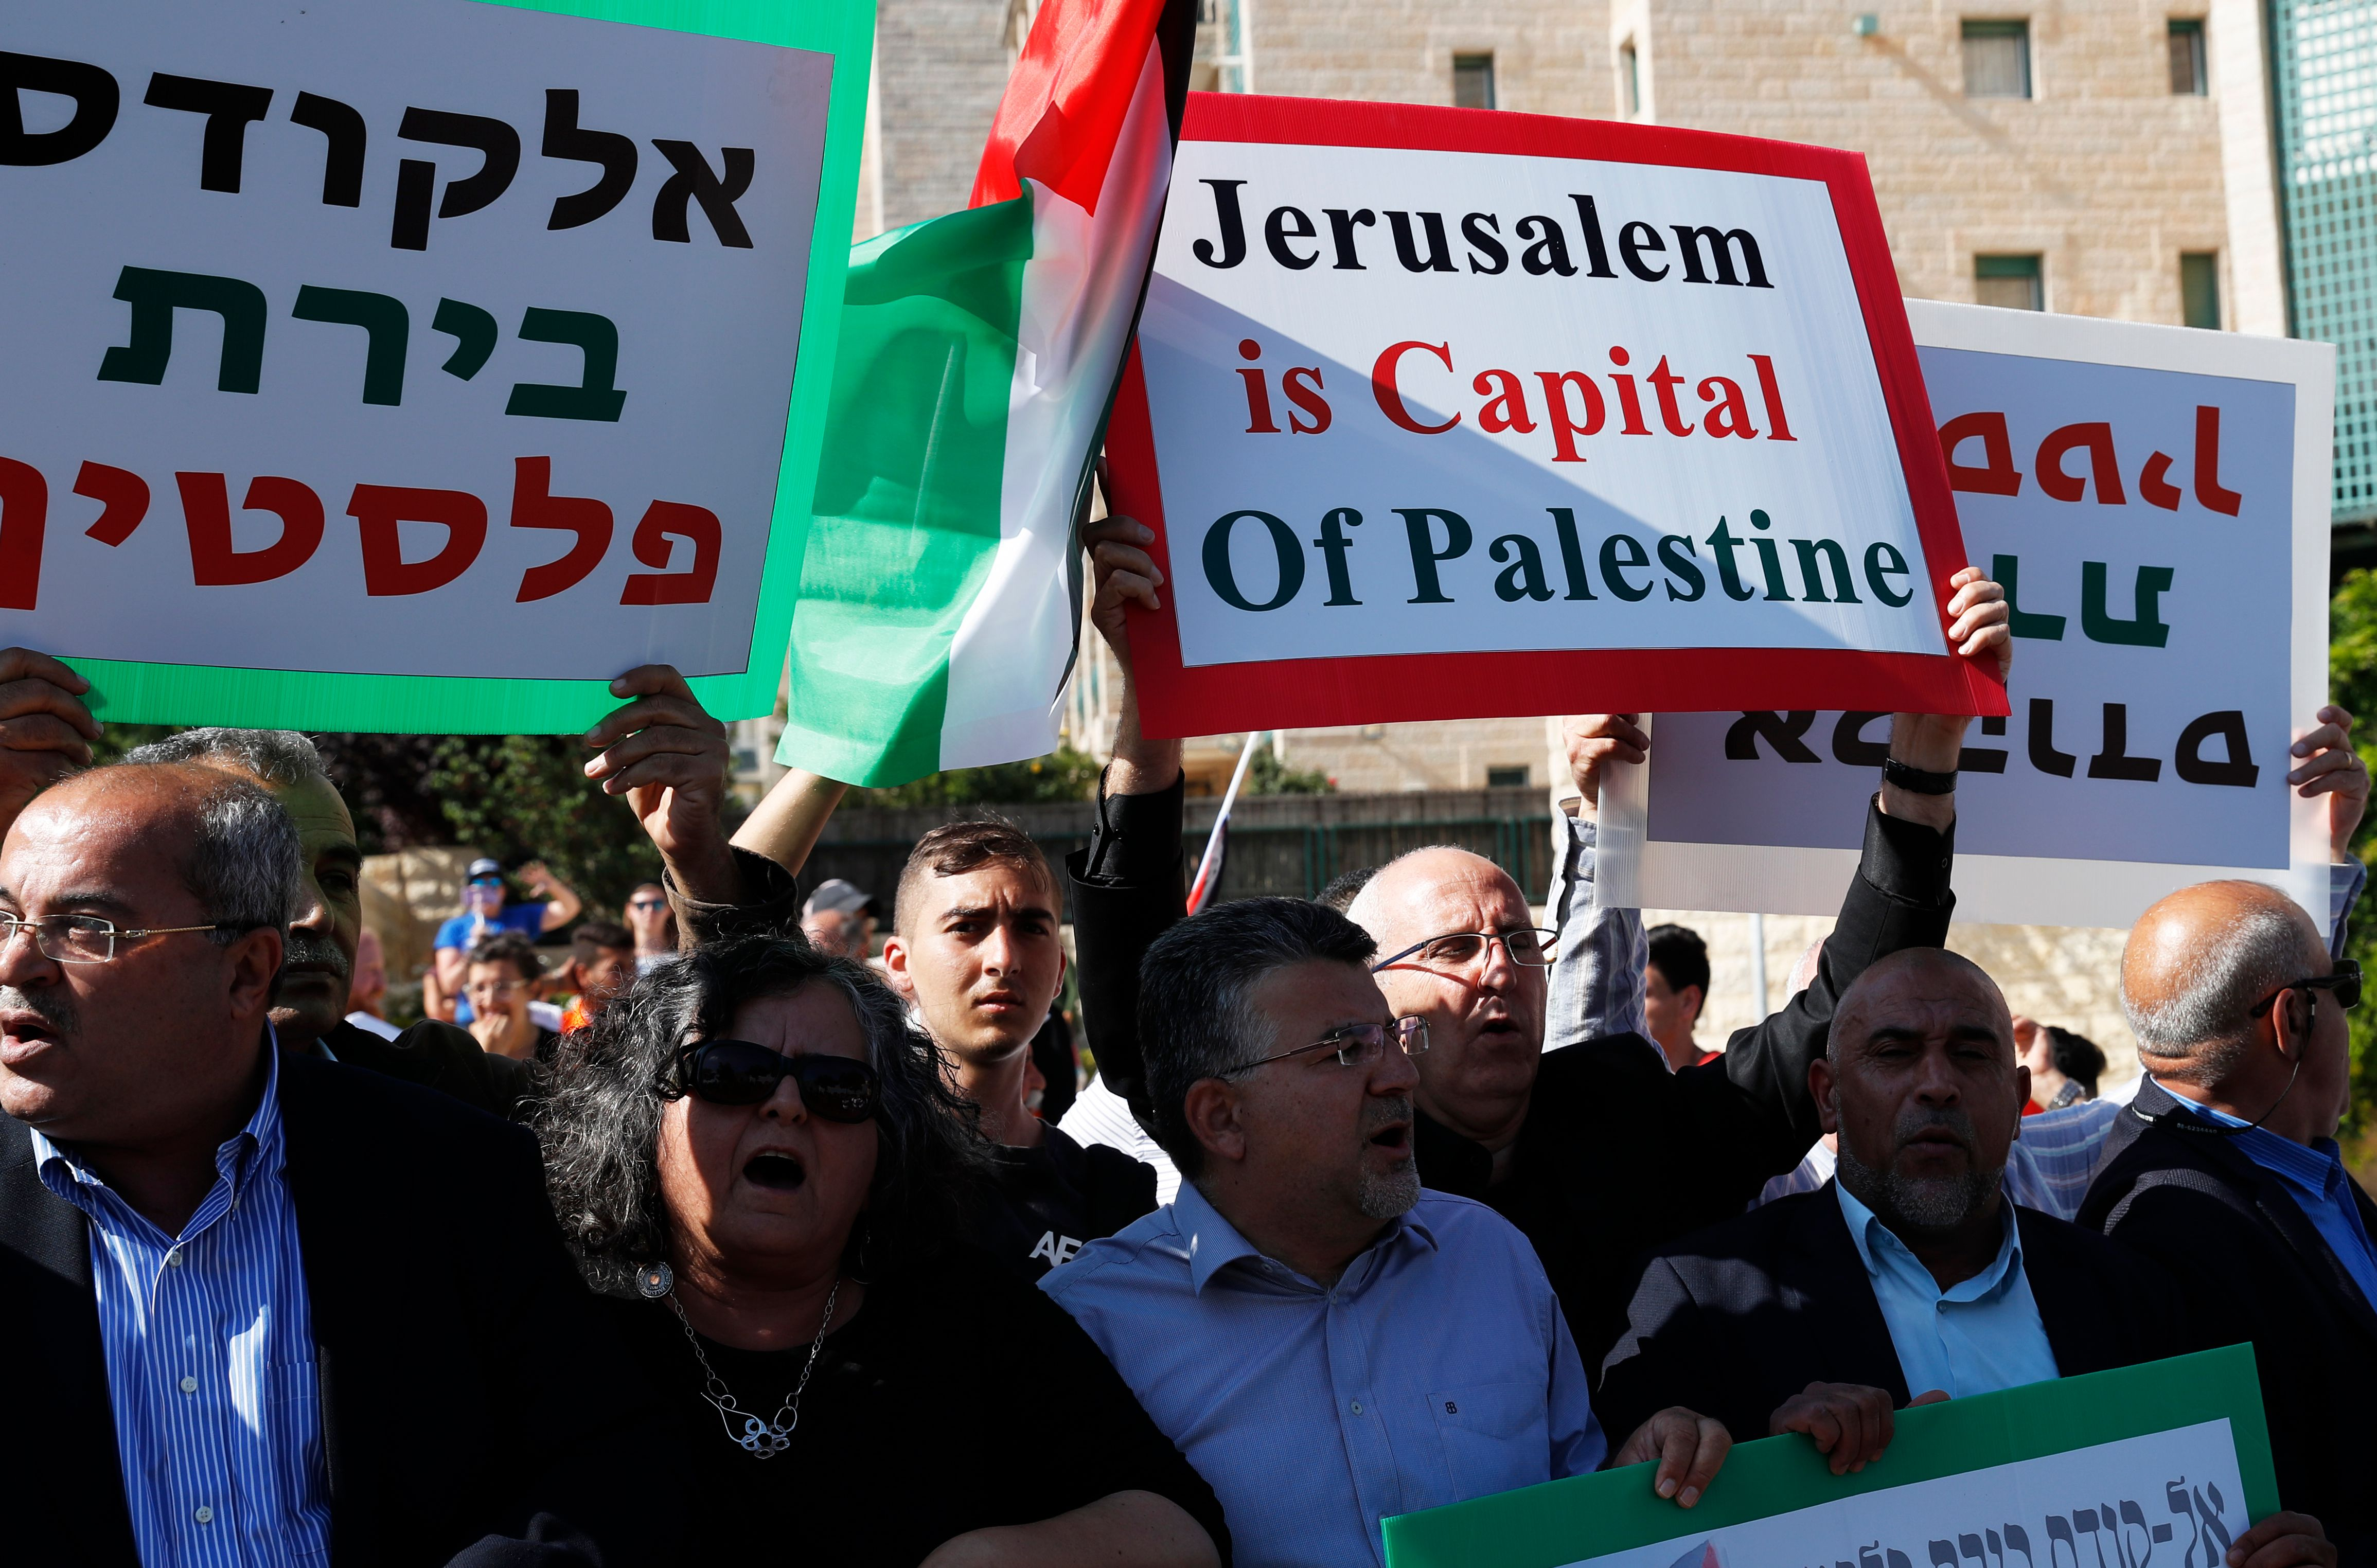 Palestinians demonstrate outside the new US embassy as the ceremony to inaugurate the United States' controversial embassy in Jerusalem began on May 14, 2018.